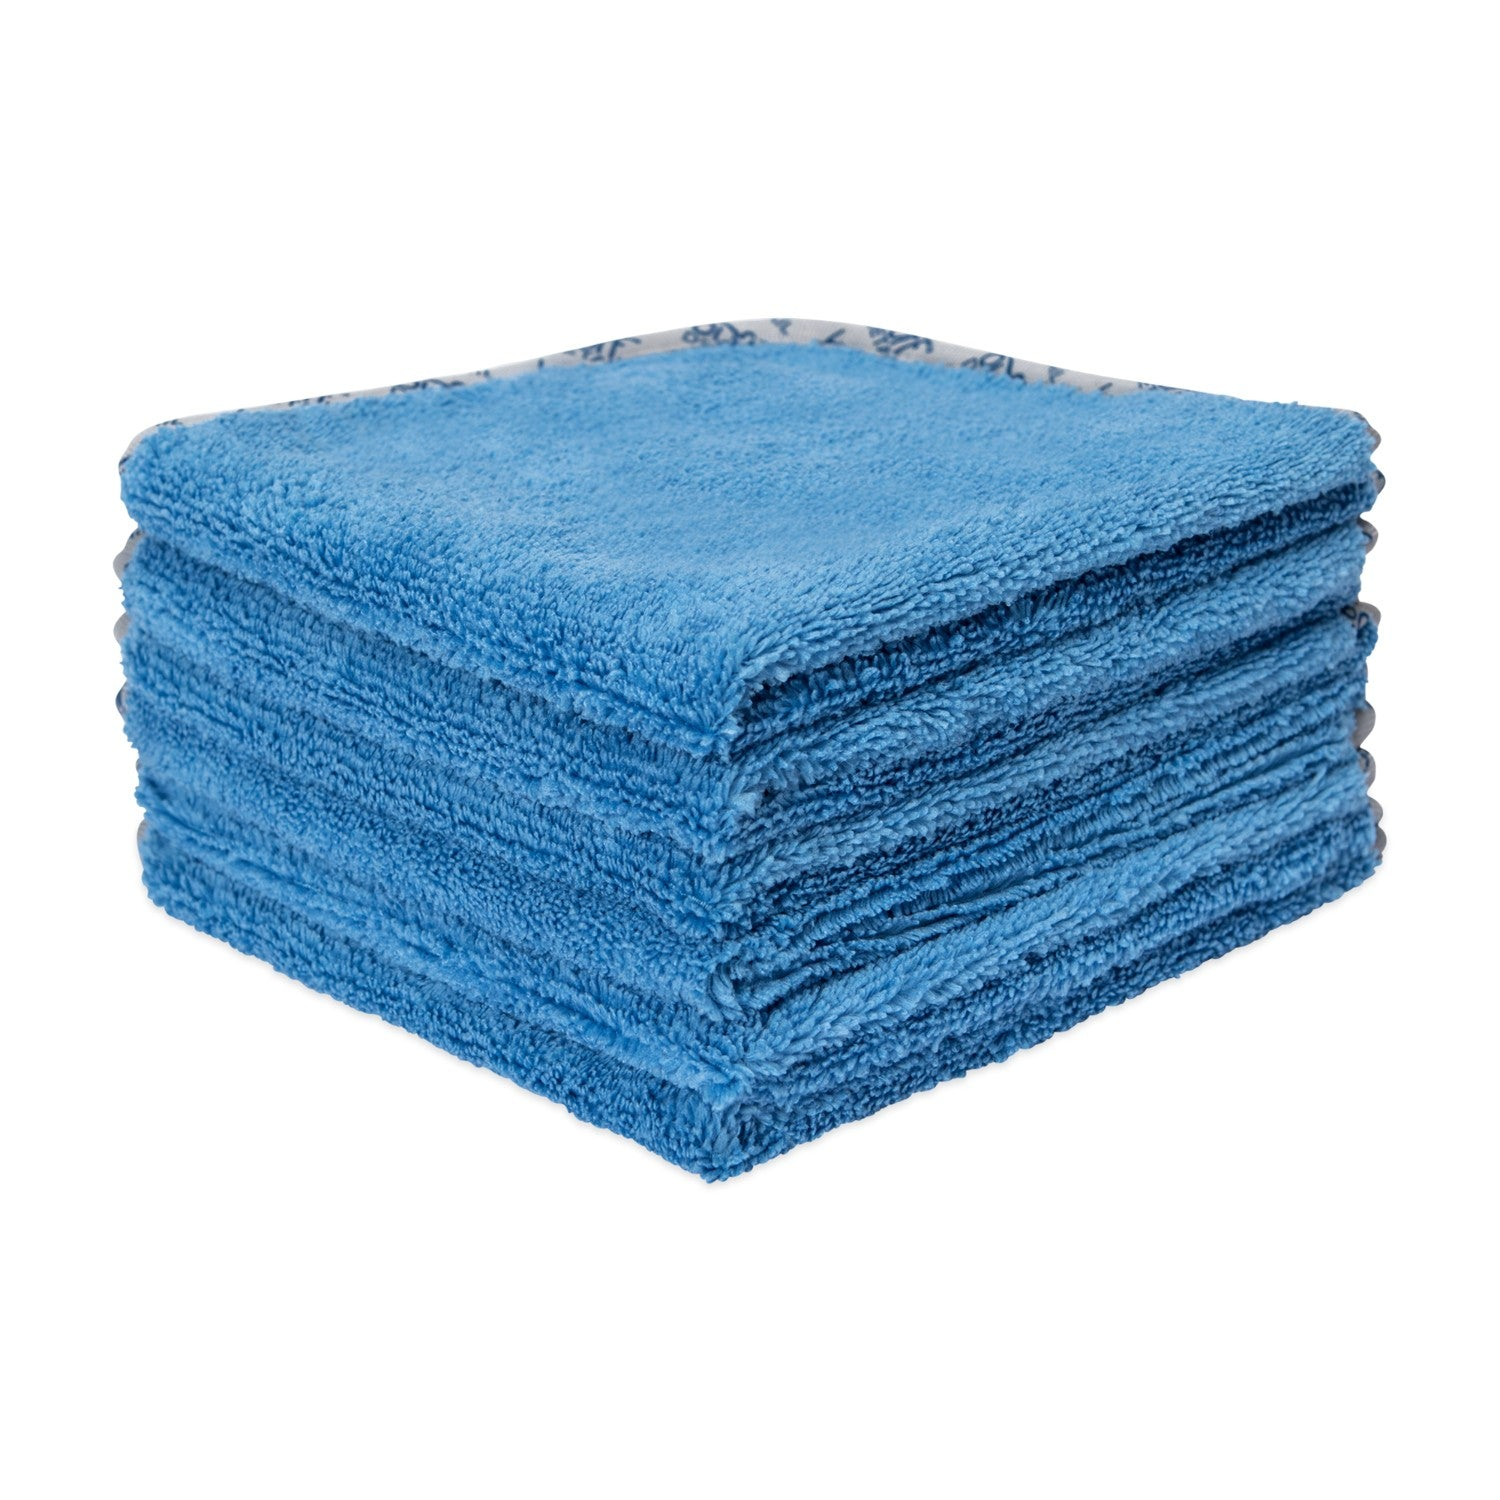 16 x 16 Blue Microfiber Towels For Cars 400 GSM